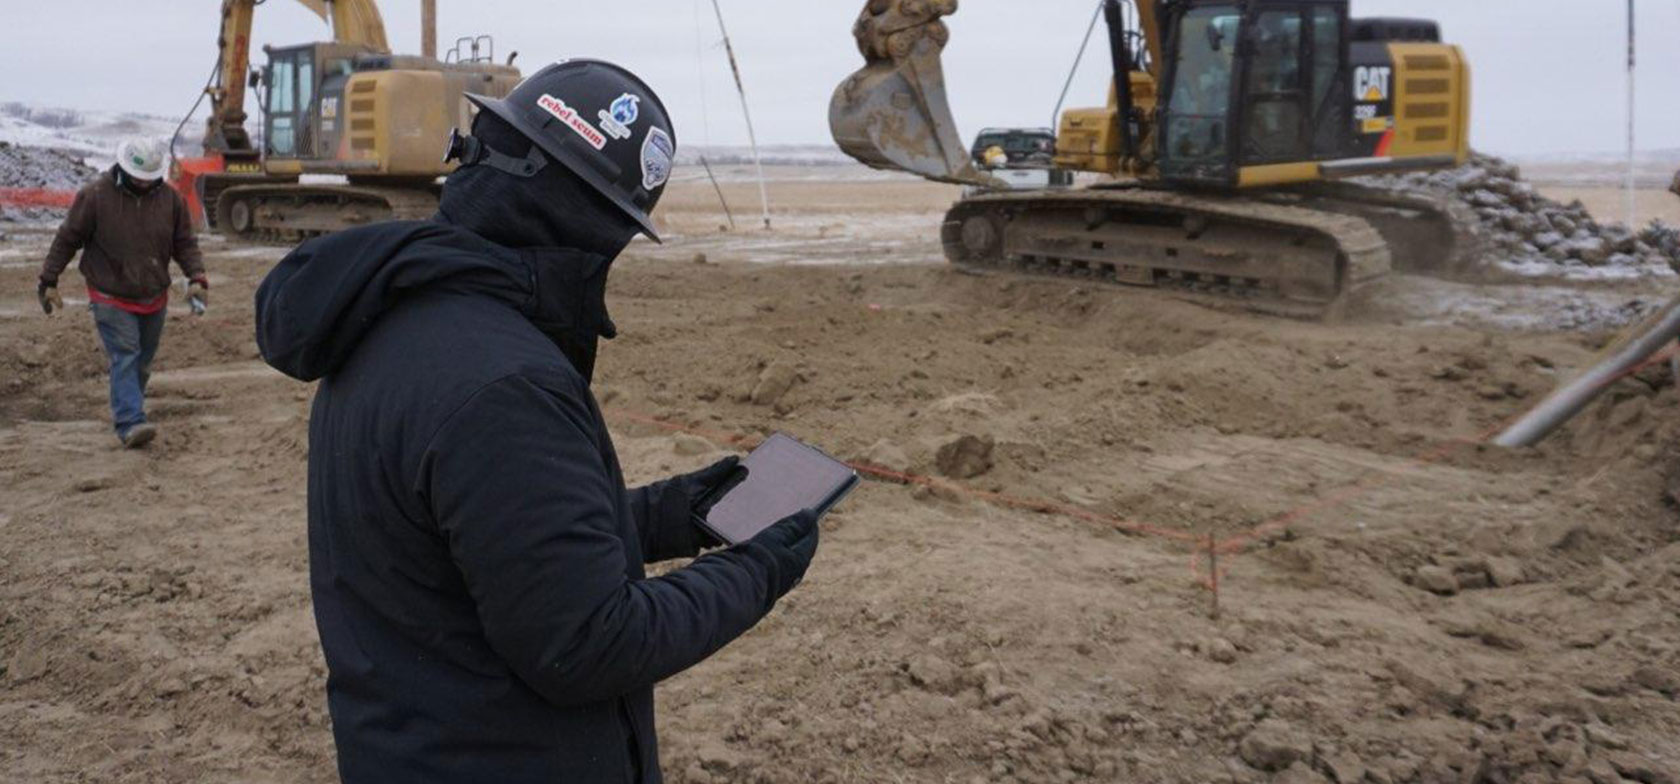 North American Pipeline Inspections uses GoFormz mobile forms in their inspections